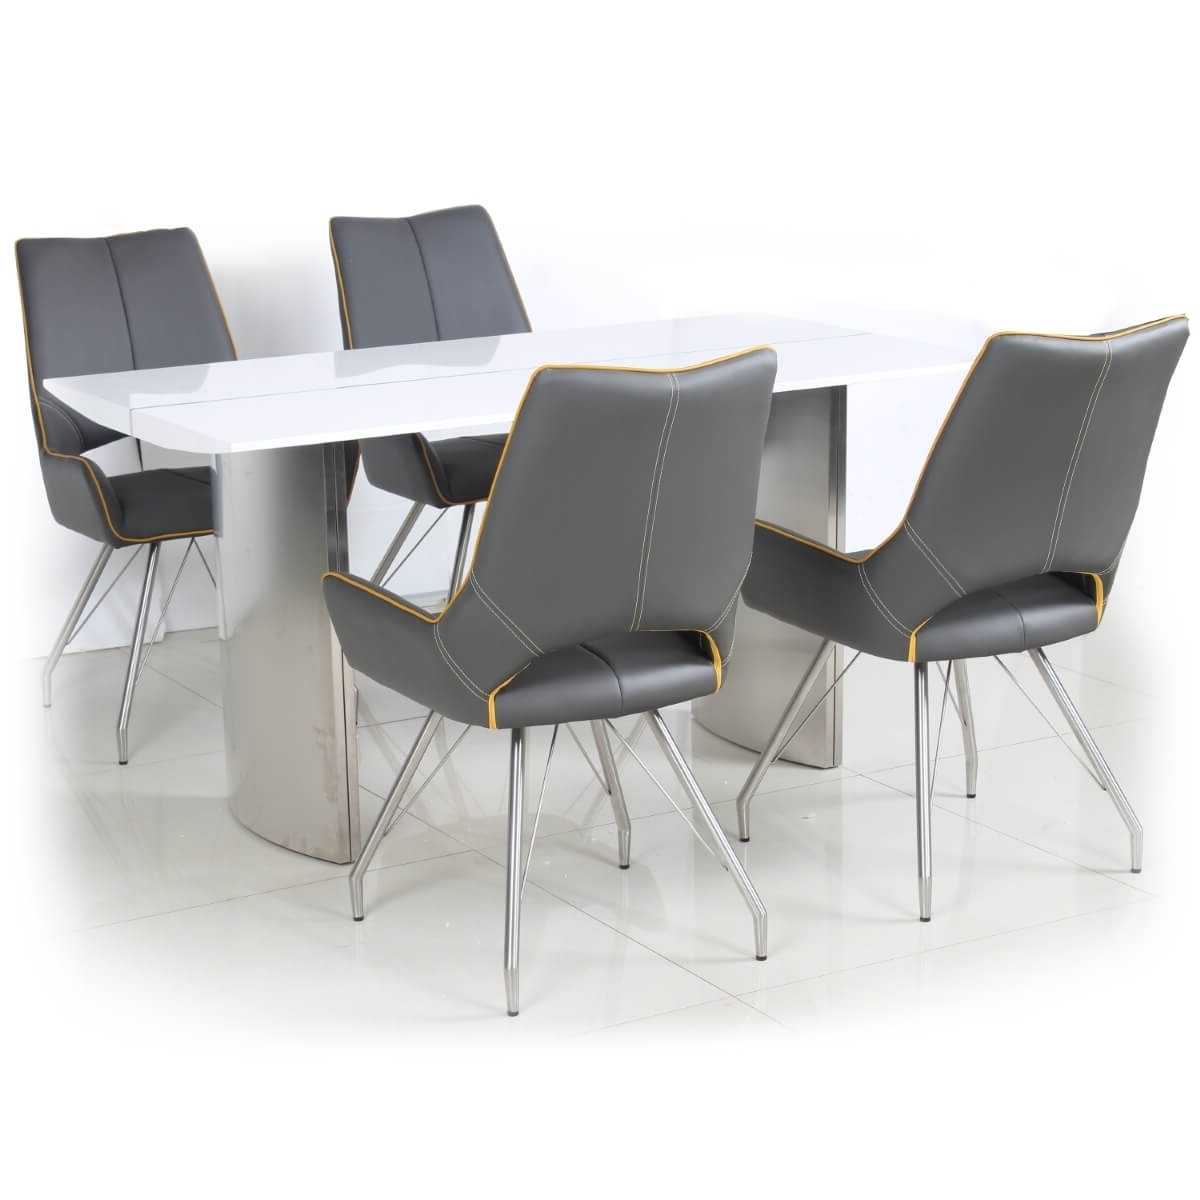 High Gloss White Dining Chairs Inside Popular Dining Set – White High Gloss Dining Table And 4 Grey Dining Chairs (View 23 of 25)